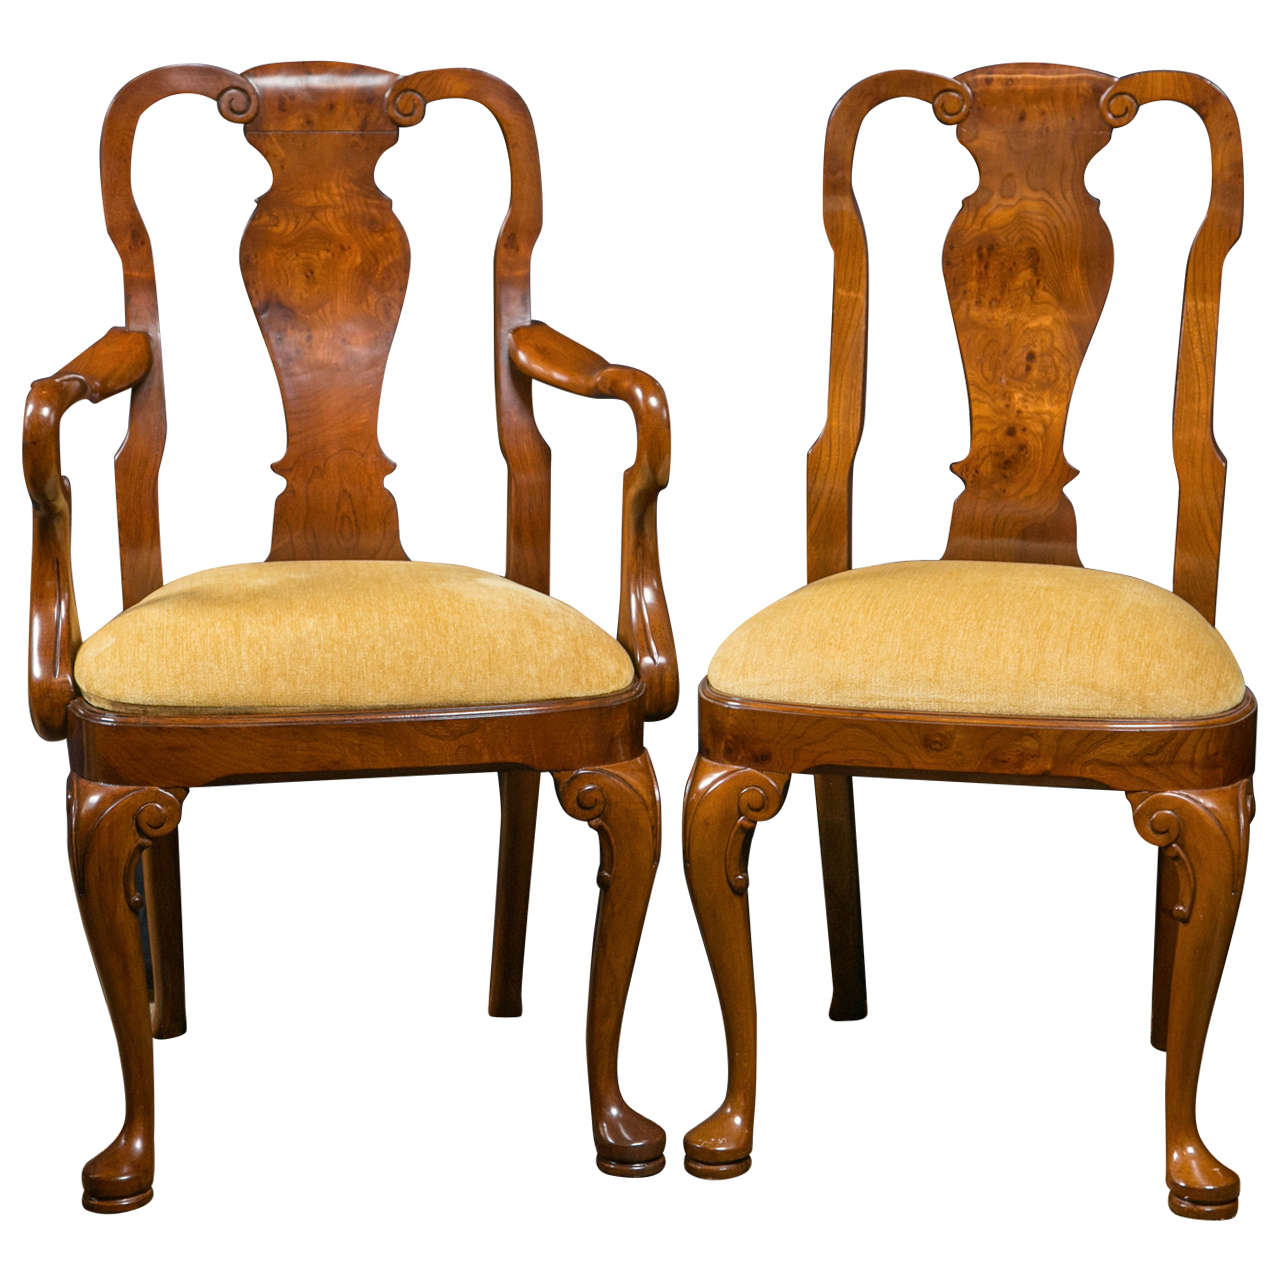 Walnut queen anne style dining chairs for sale at 1stdibs - Queen anne dining room furniture ...